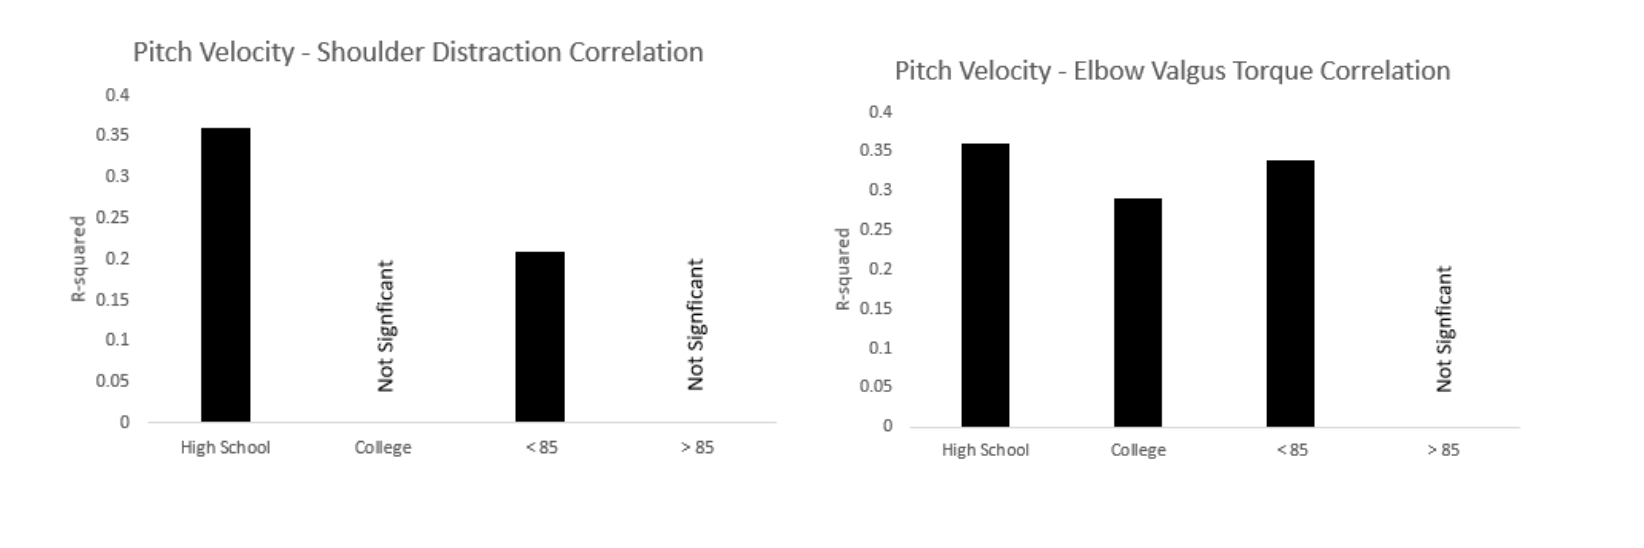 Pitch Velocity Shoulder Correlation